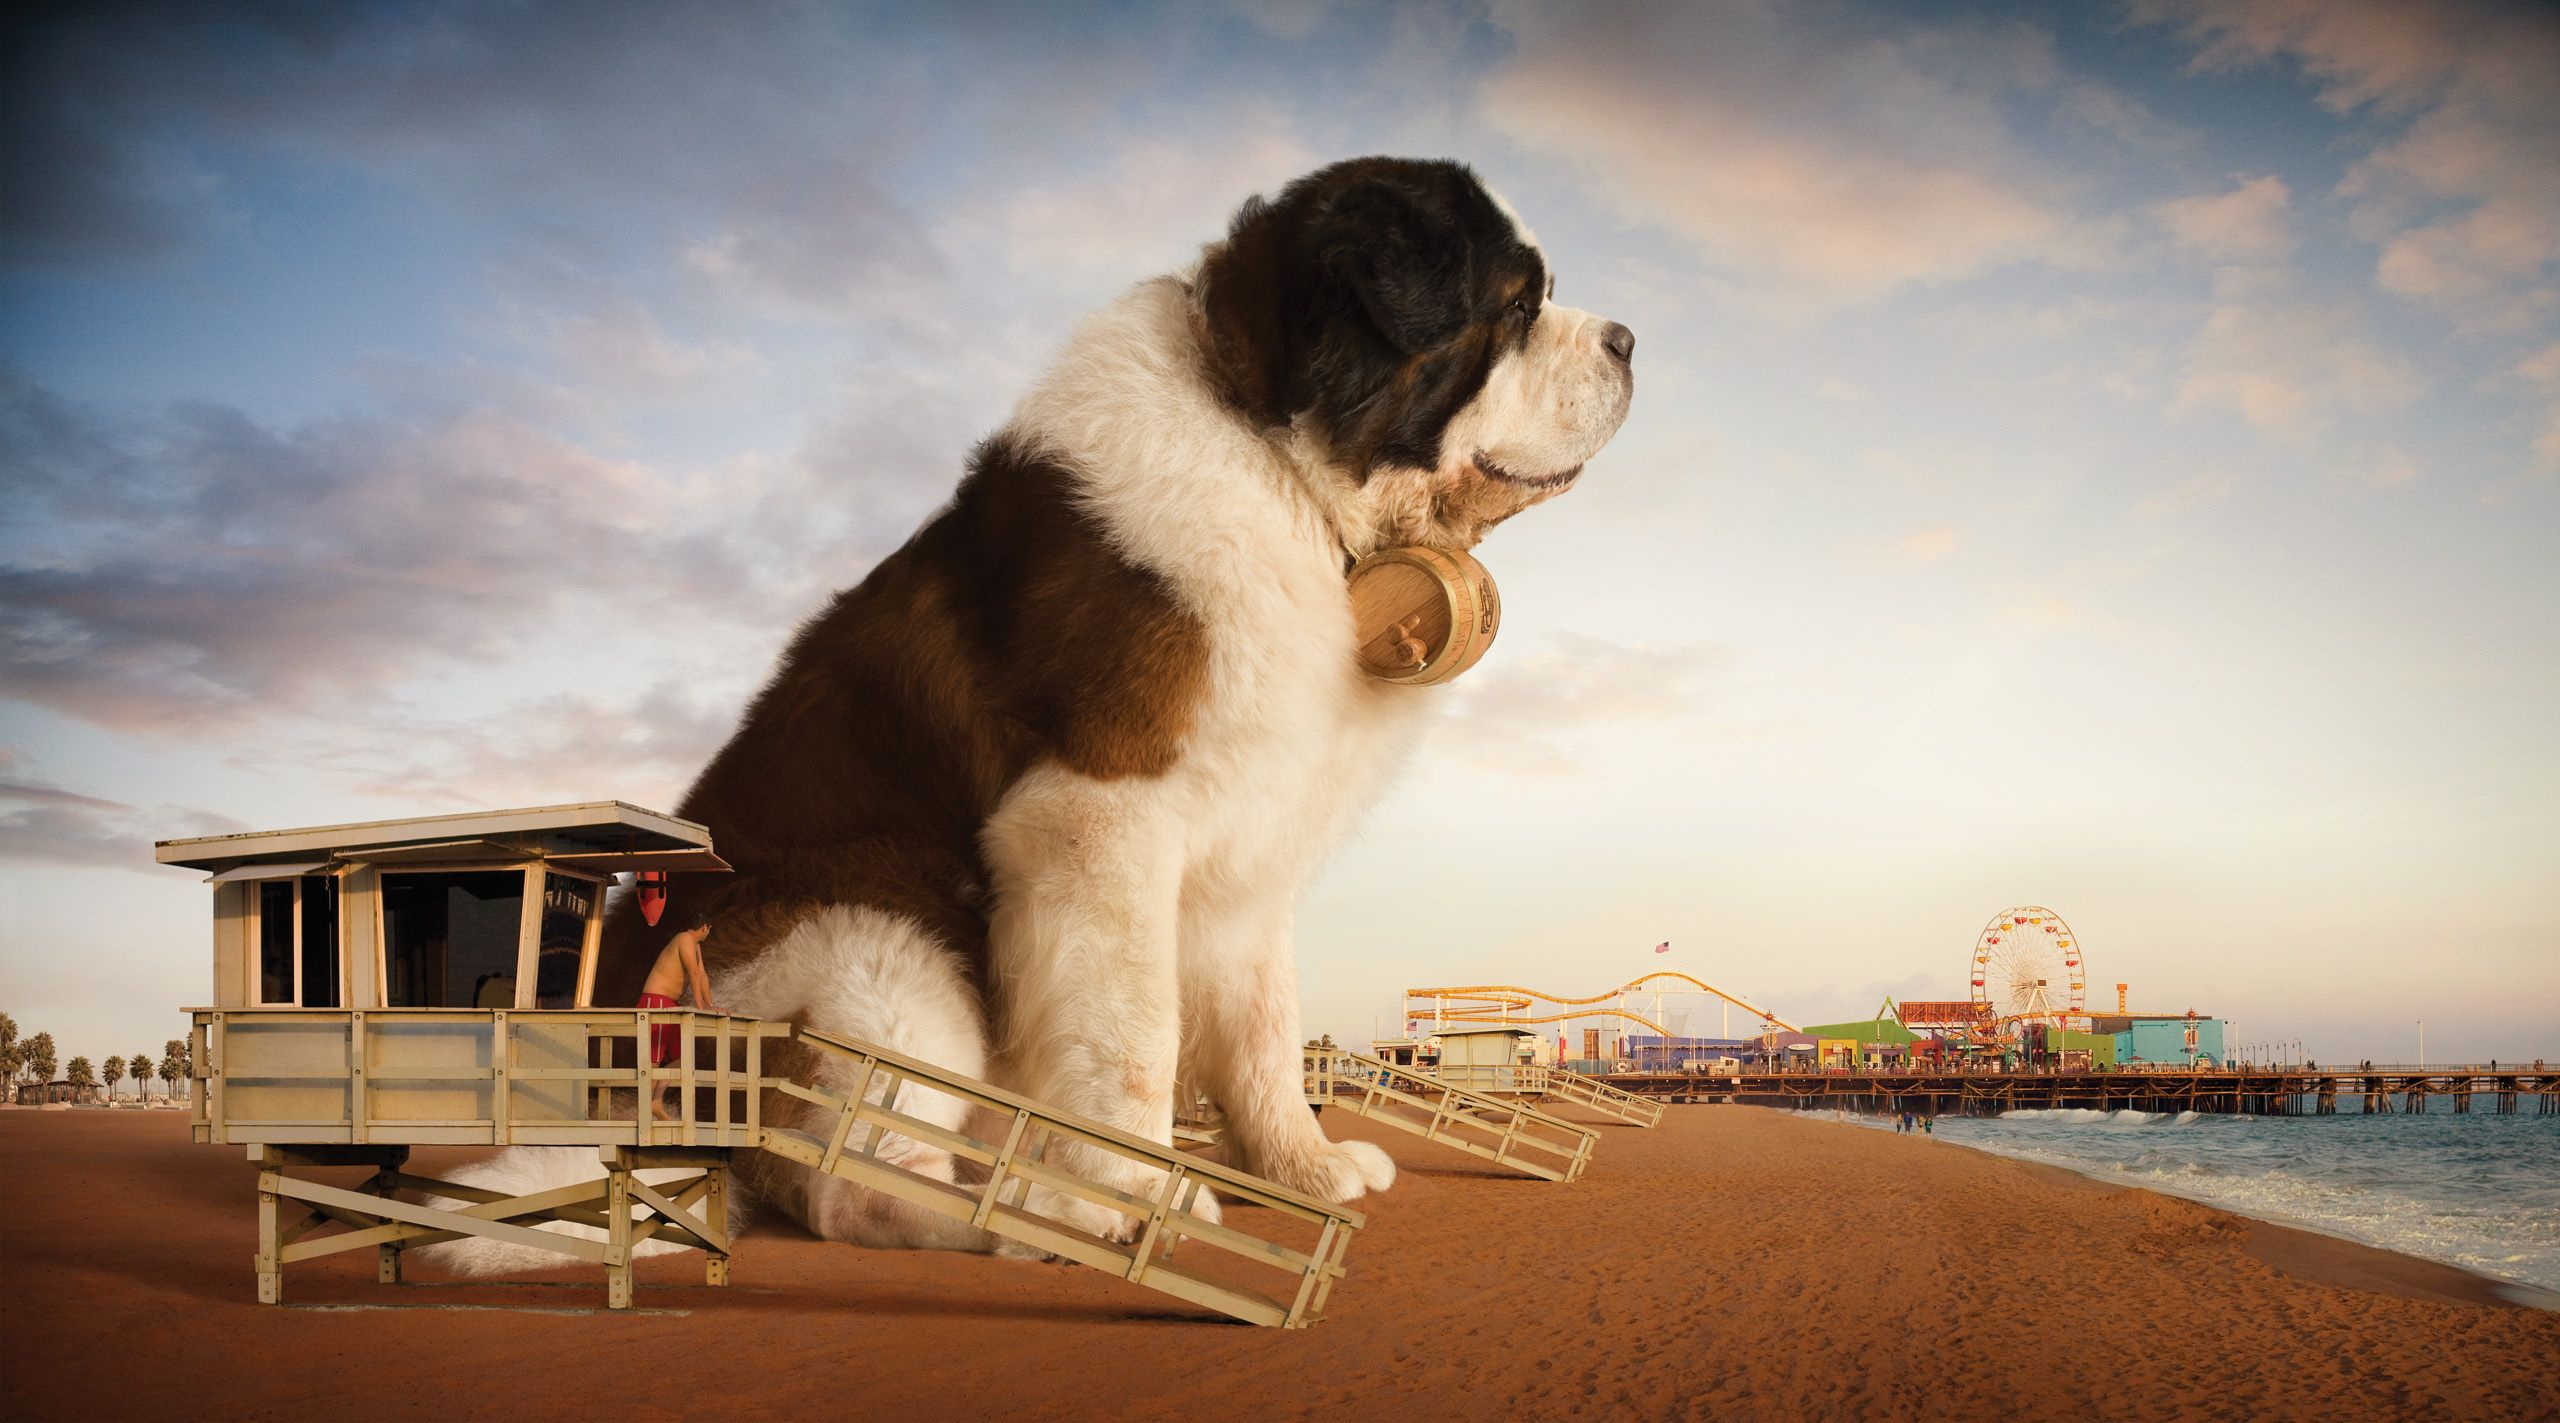 Giant-Saint-Bernard-Wallpaper-hd